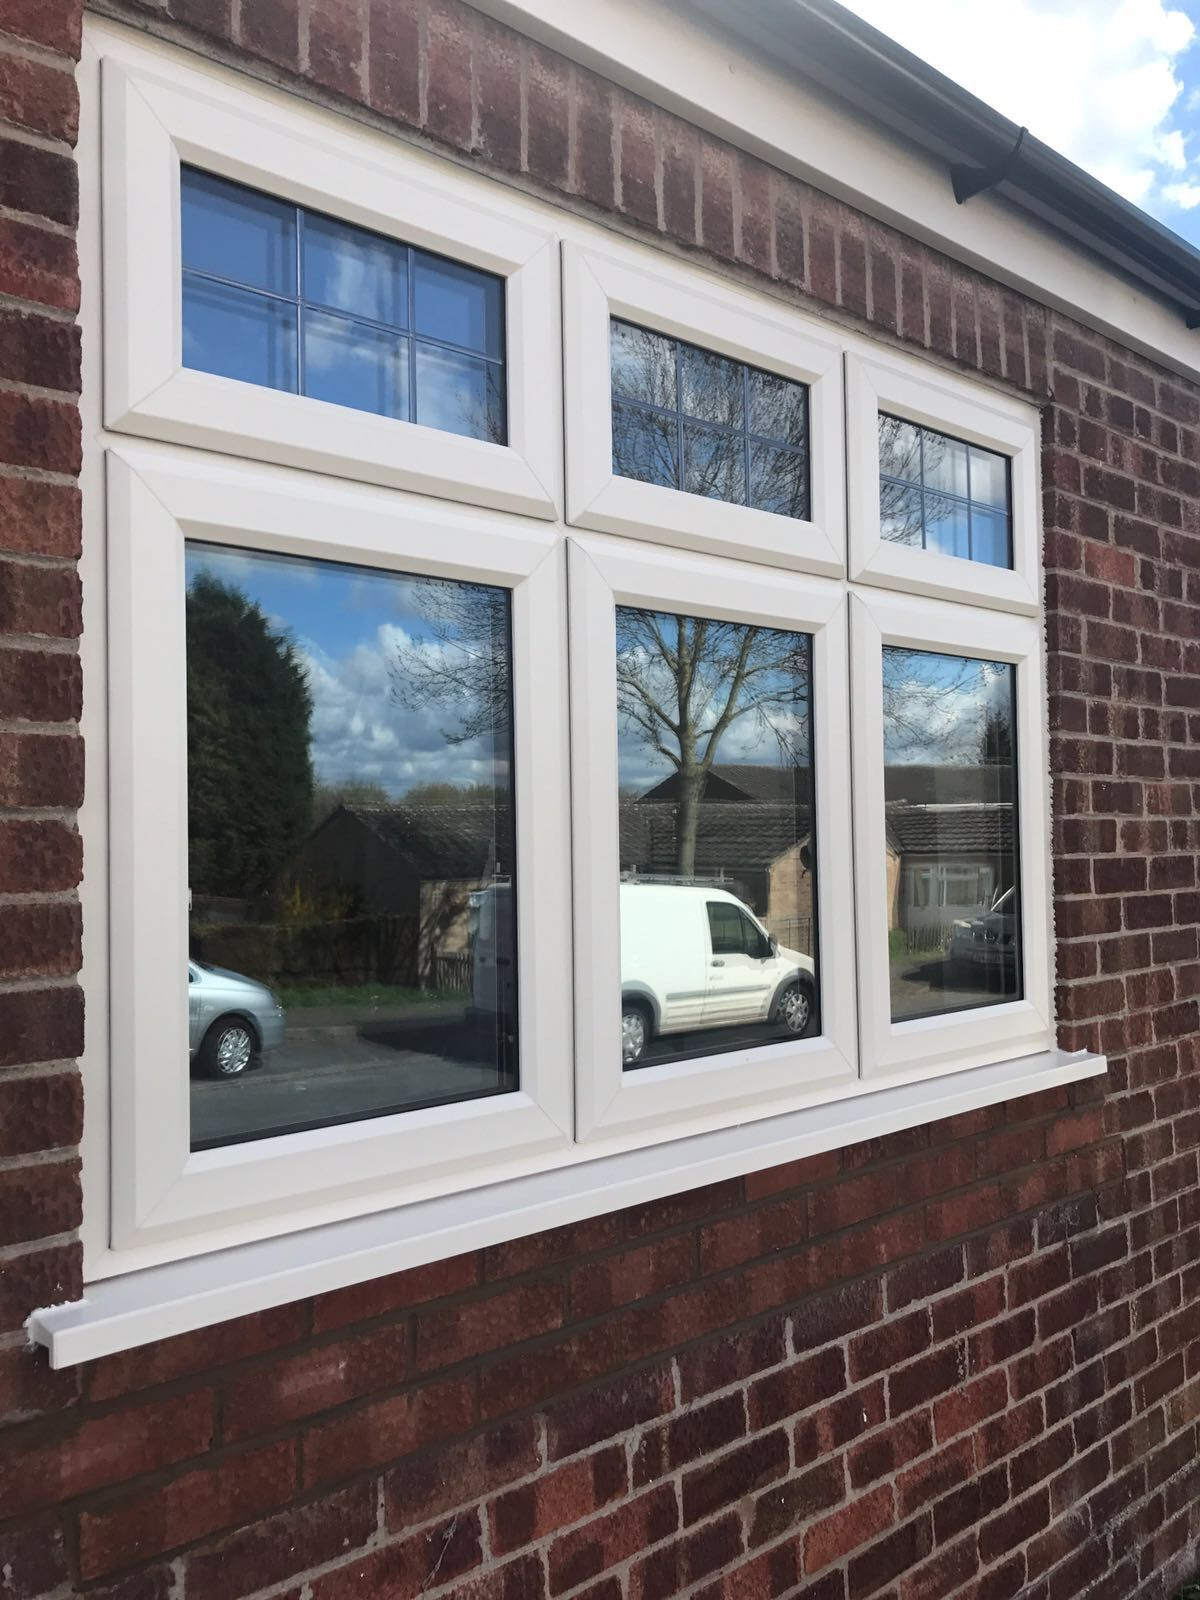 Cellular pvc window construction and technology - Cream Synseal Legend 70 Double Glazed A Rated Windows With Aged Square Lead Top